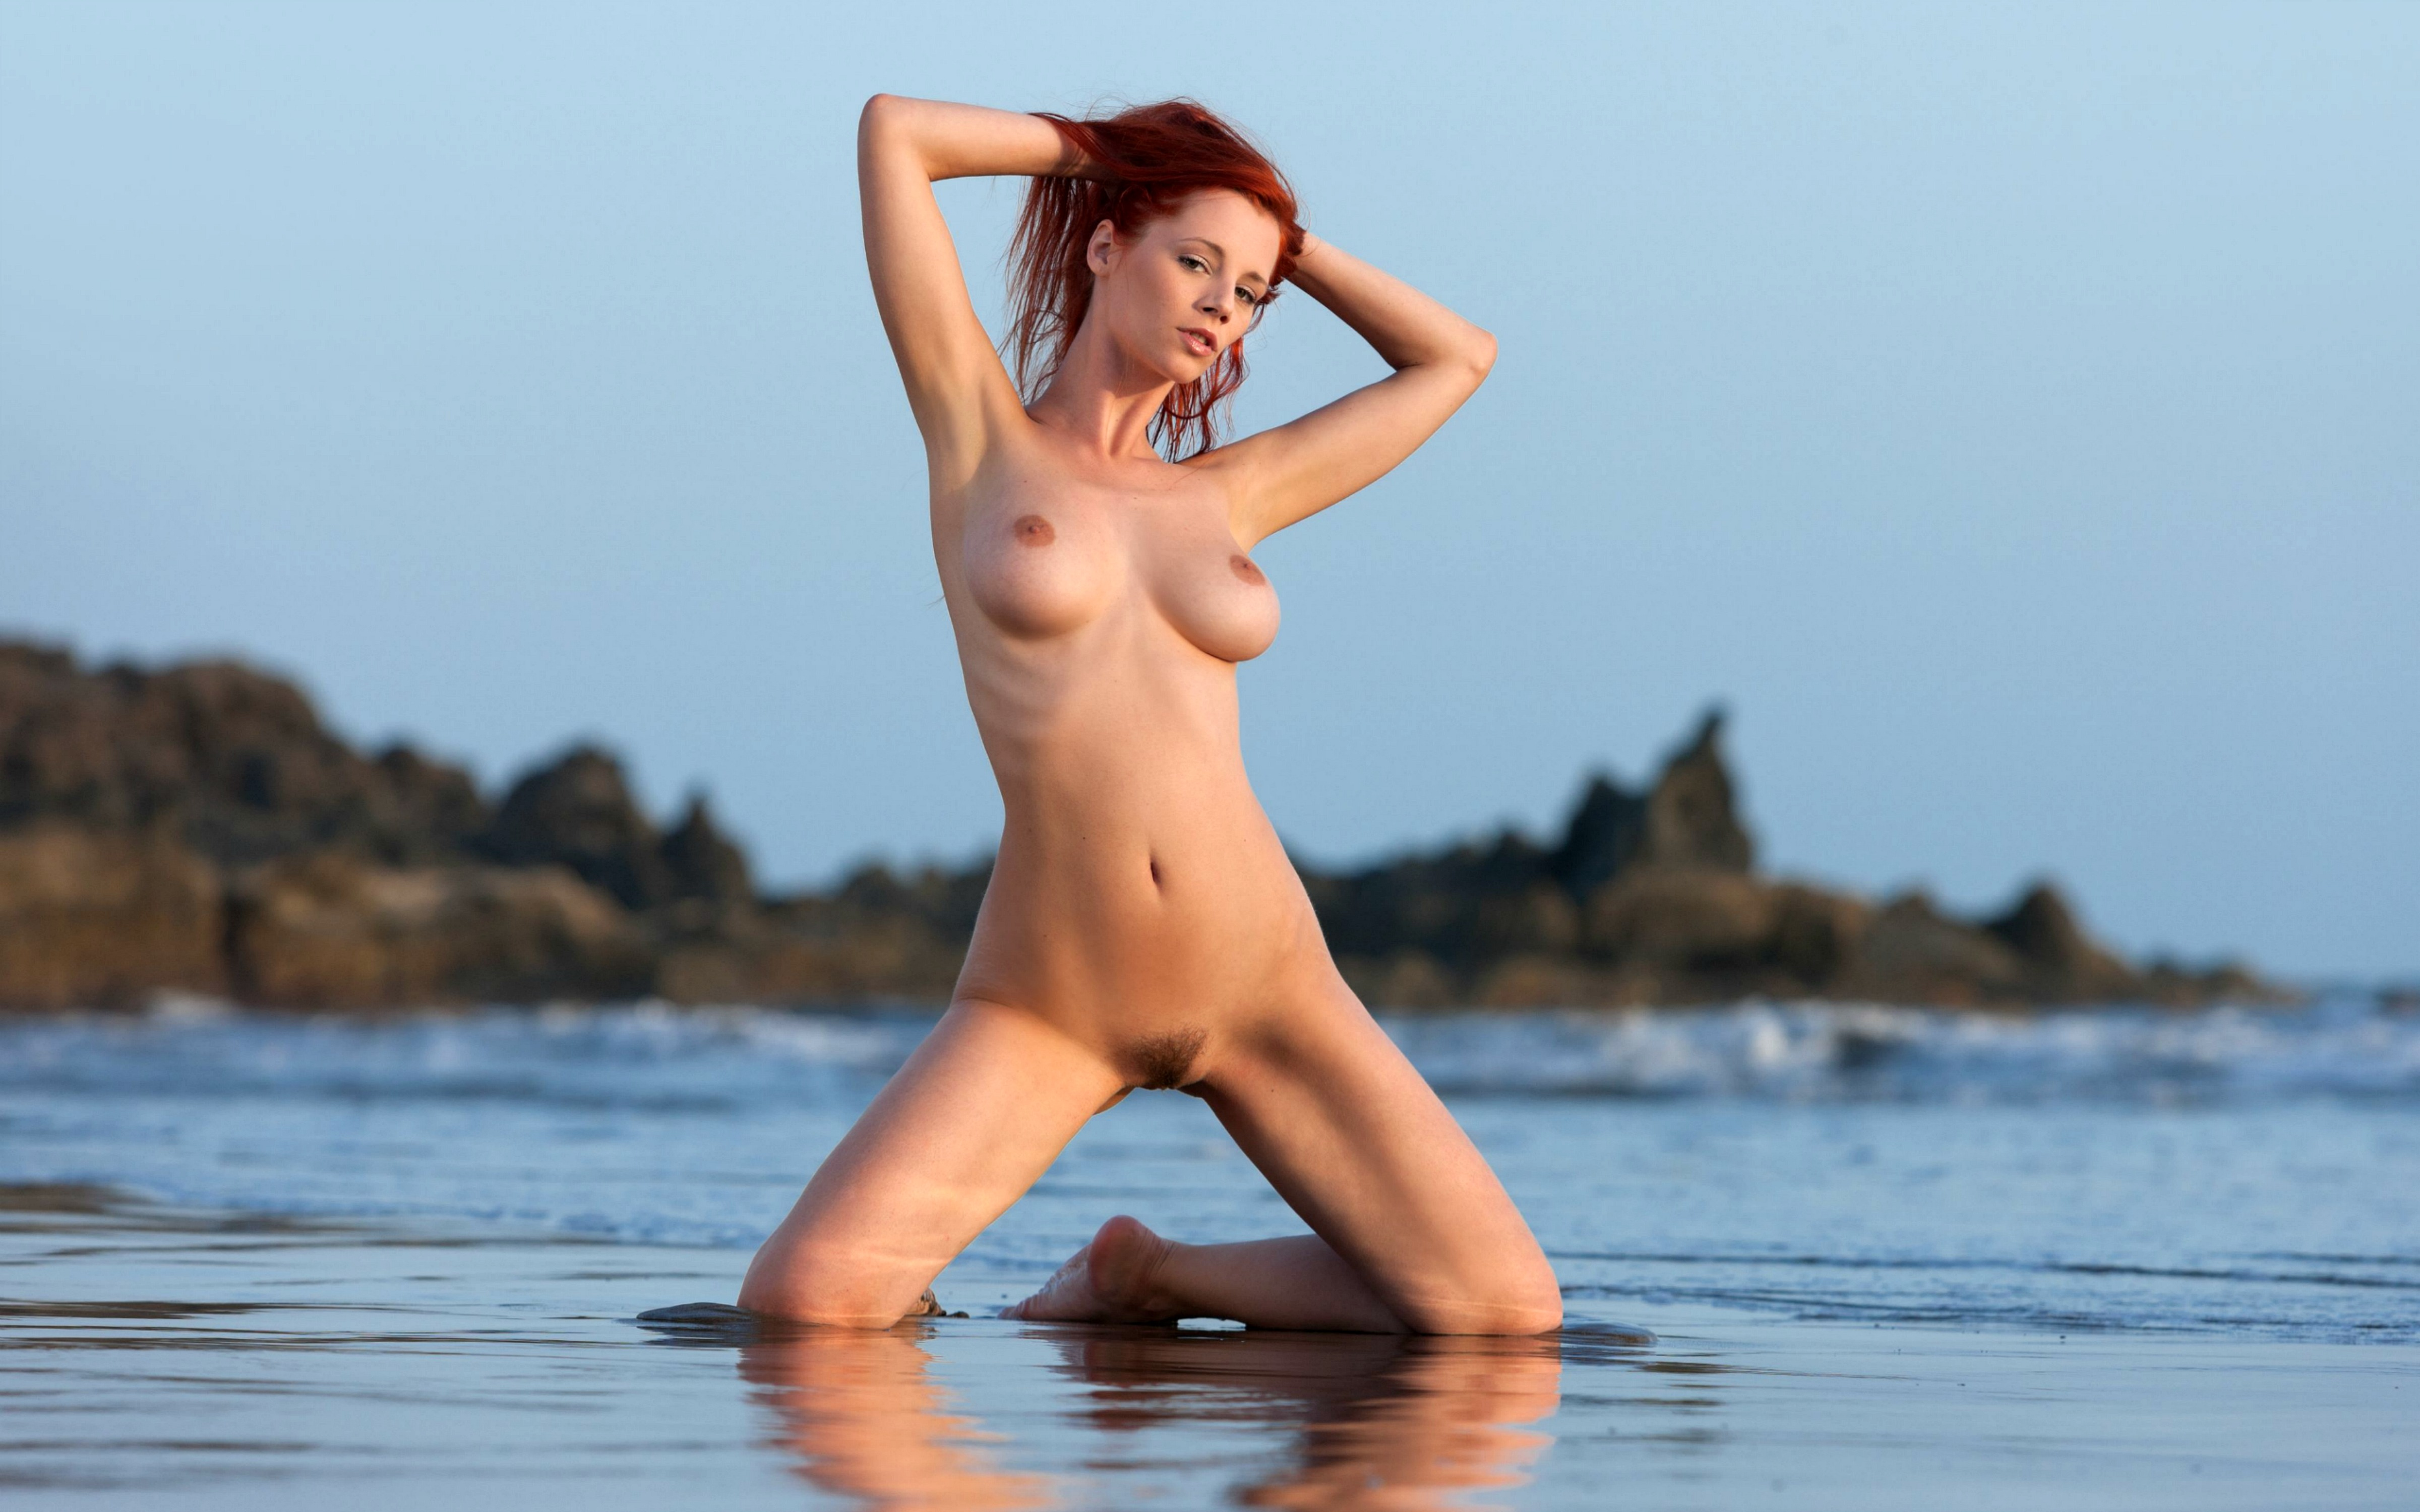 Opinion, interesting beach nude with legs apart join